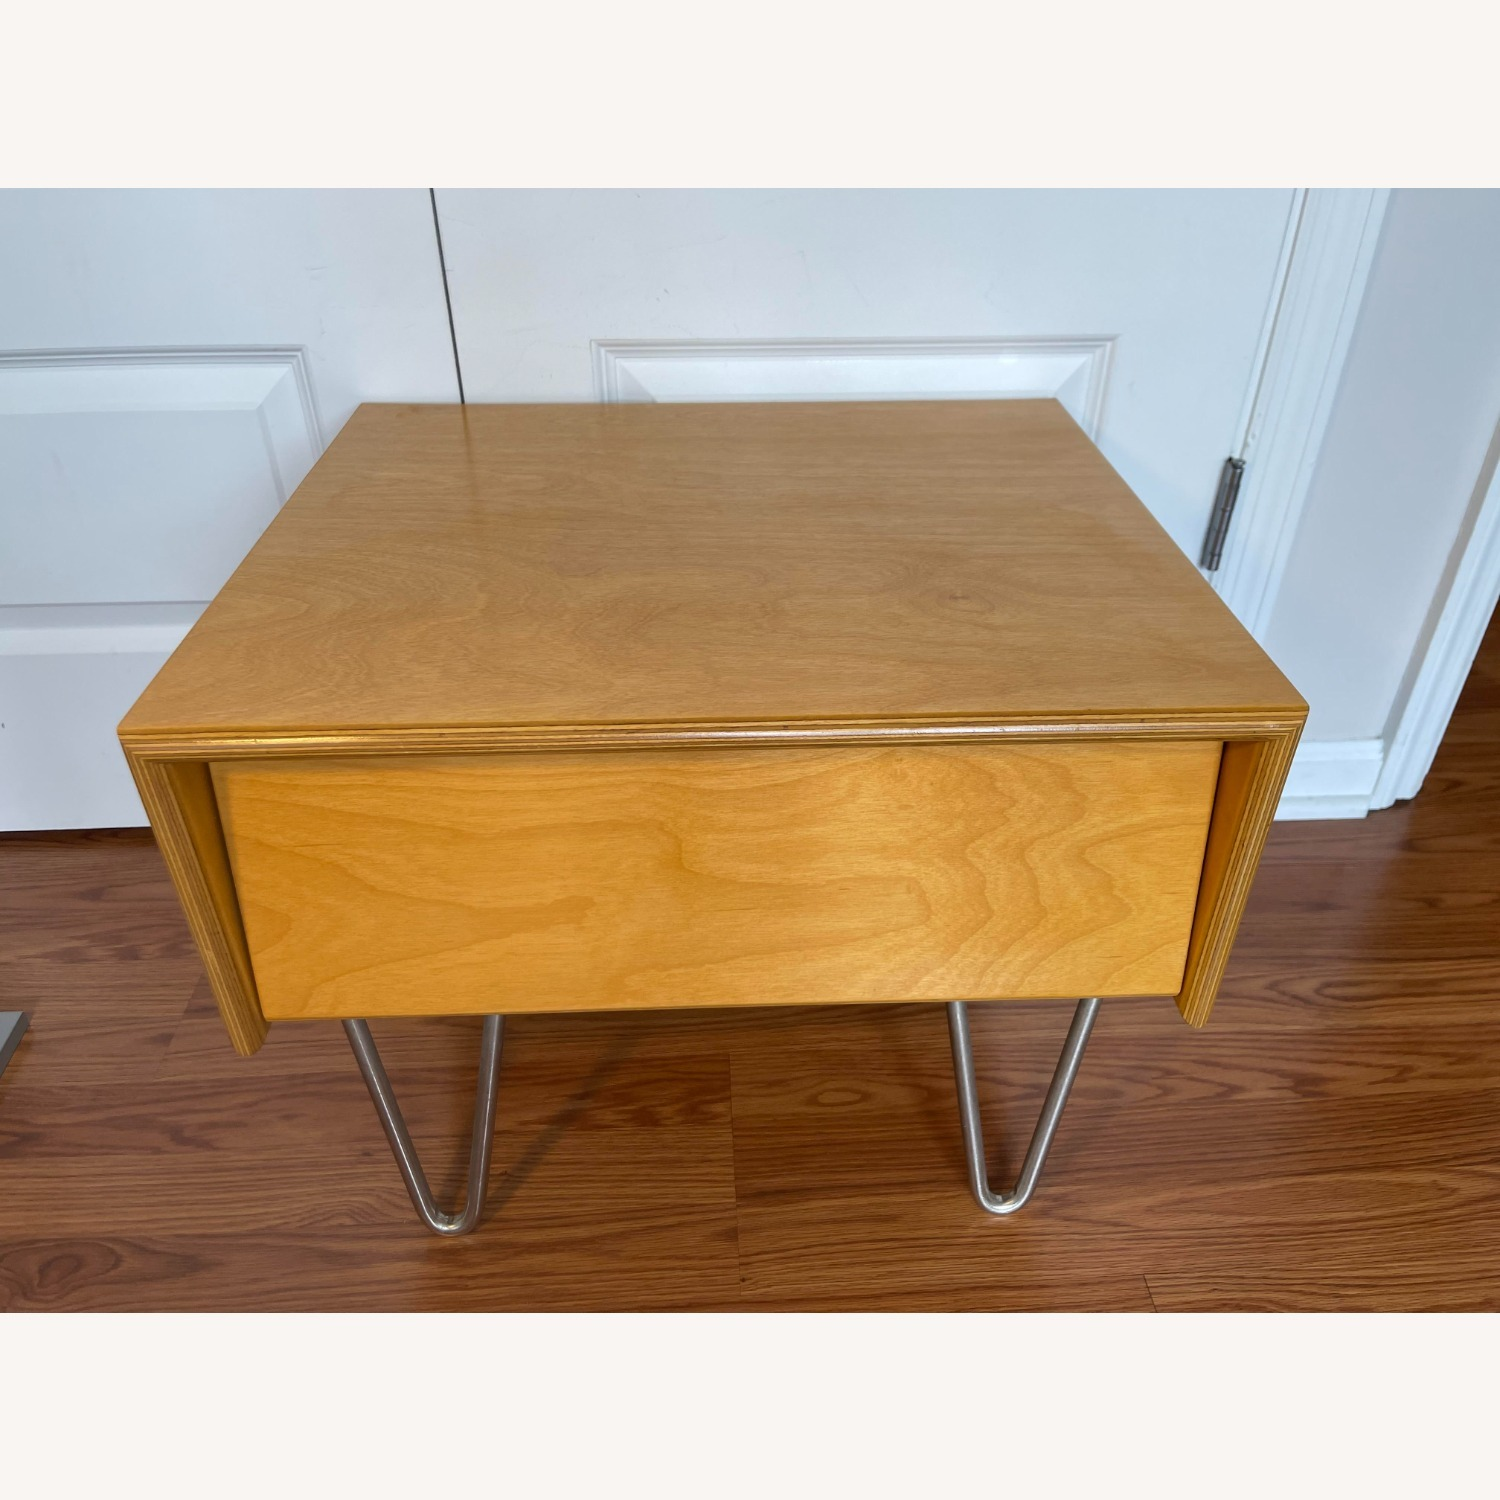 2x Modernica Case Study Nightstand Classic Stain - image-2